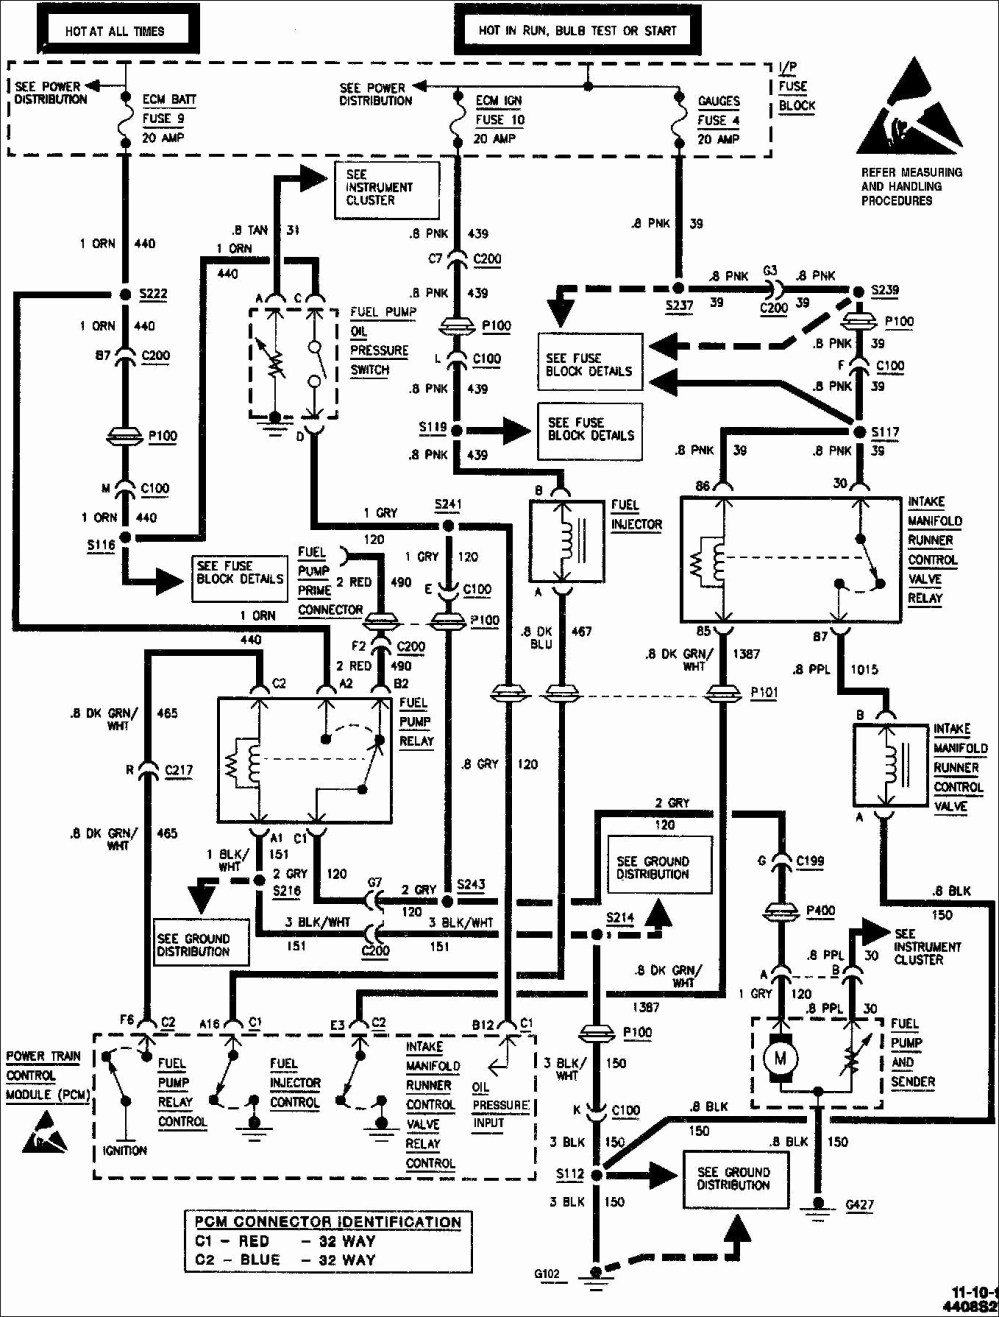 medium resolution of ford ranger turn signal wiring diagram wiring library ford mustang mach 1 besides ford explorer frame diagram on 2000 ford